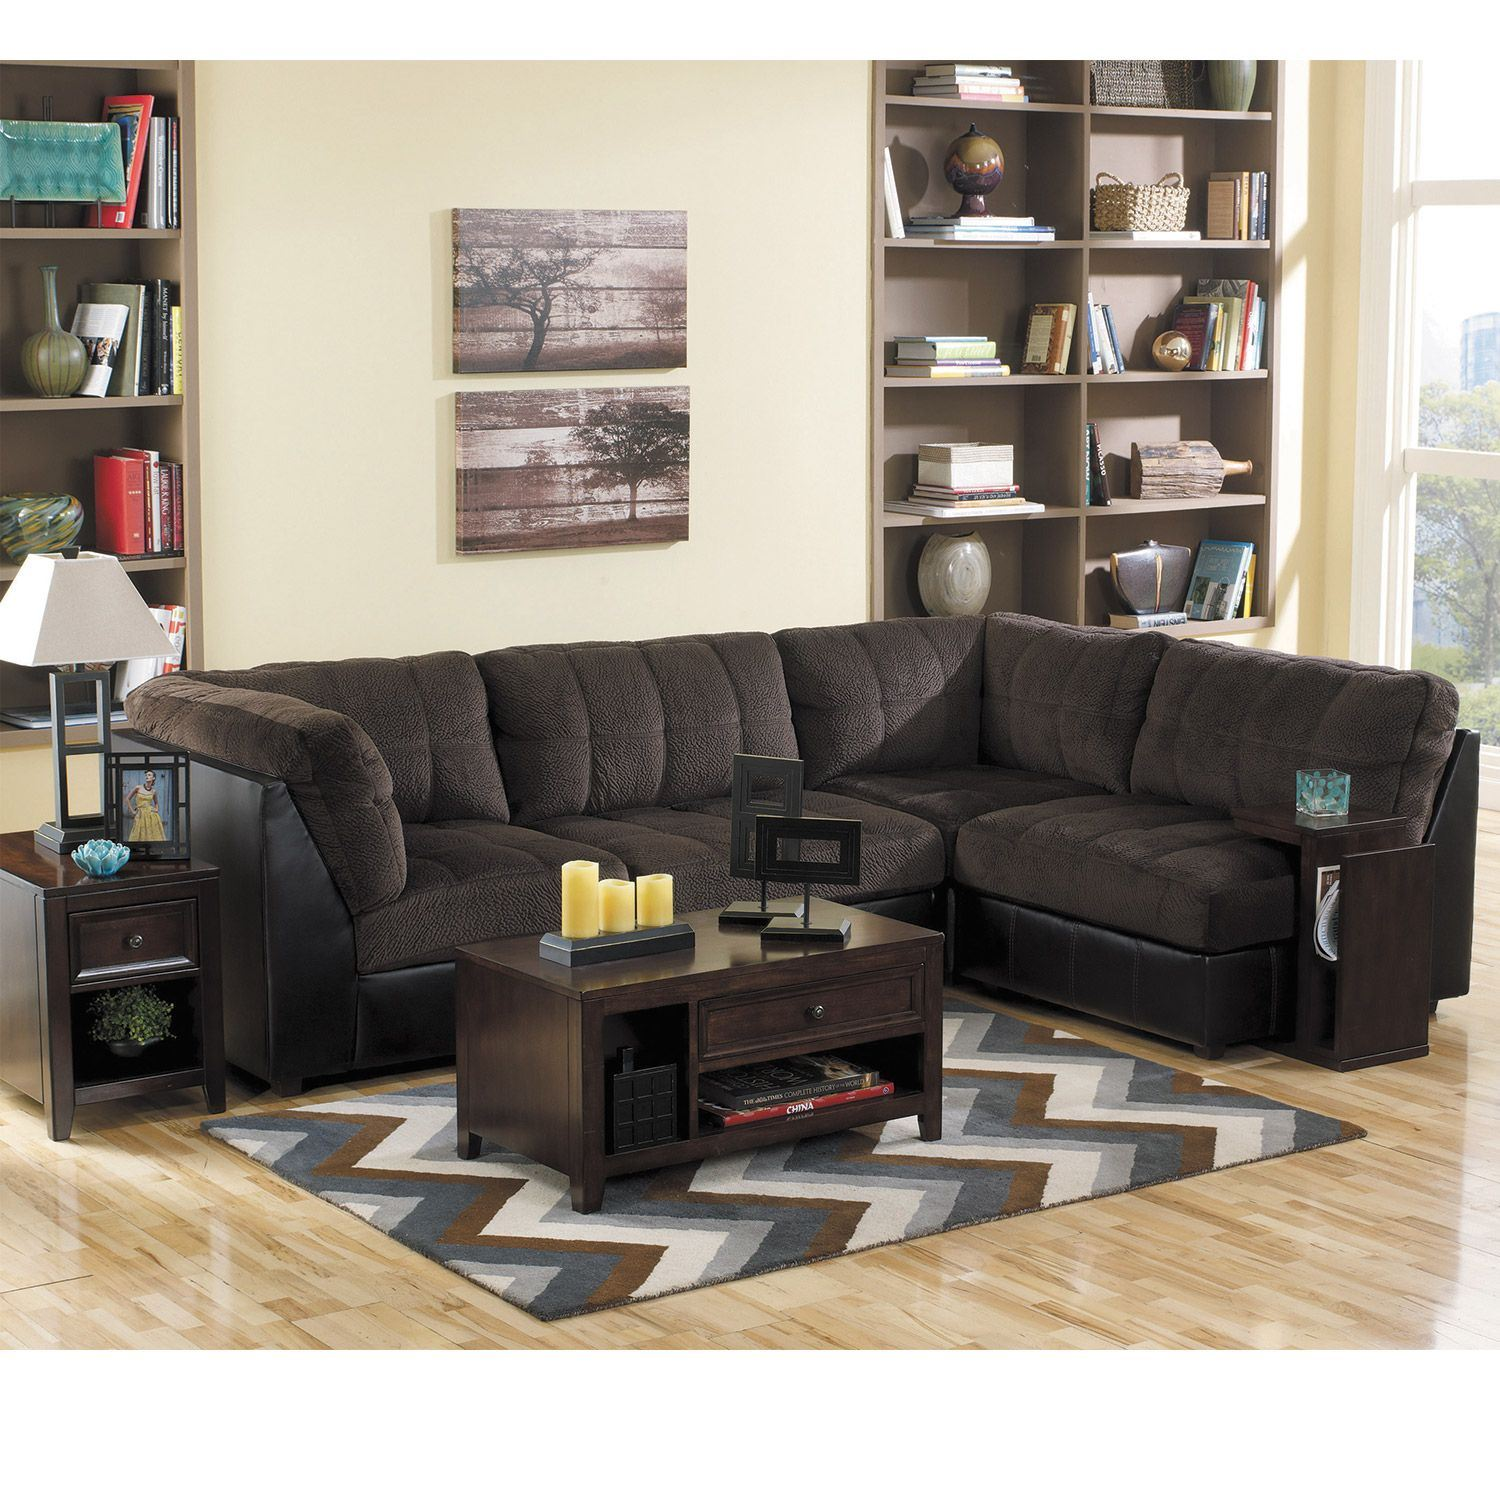 Discount living room furniture 100 buy living room chairs for Whole living room furniture sets